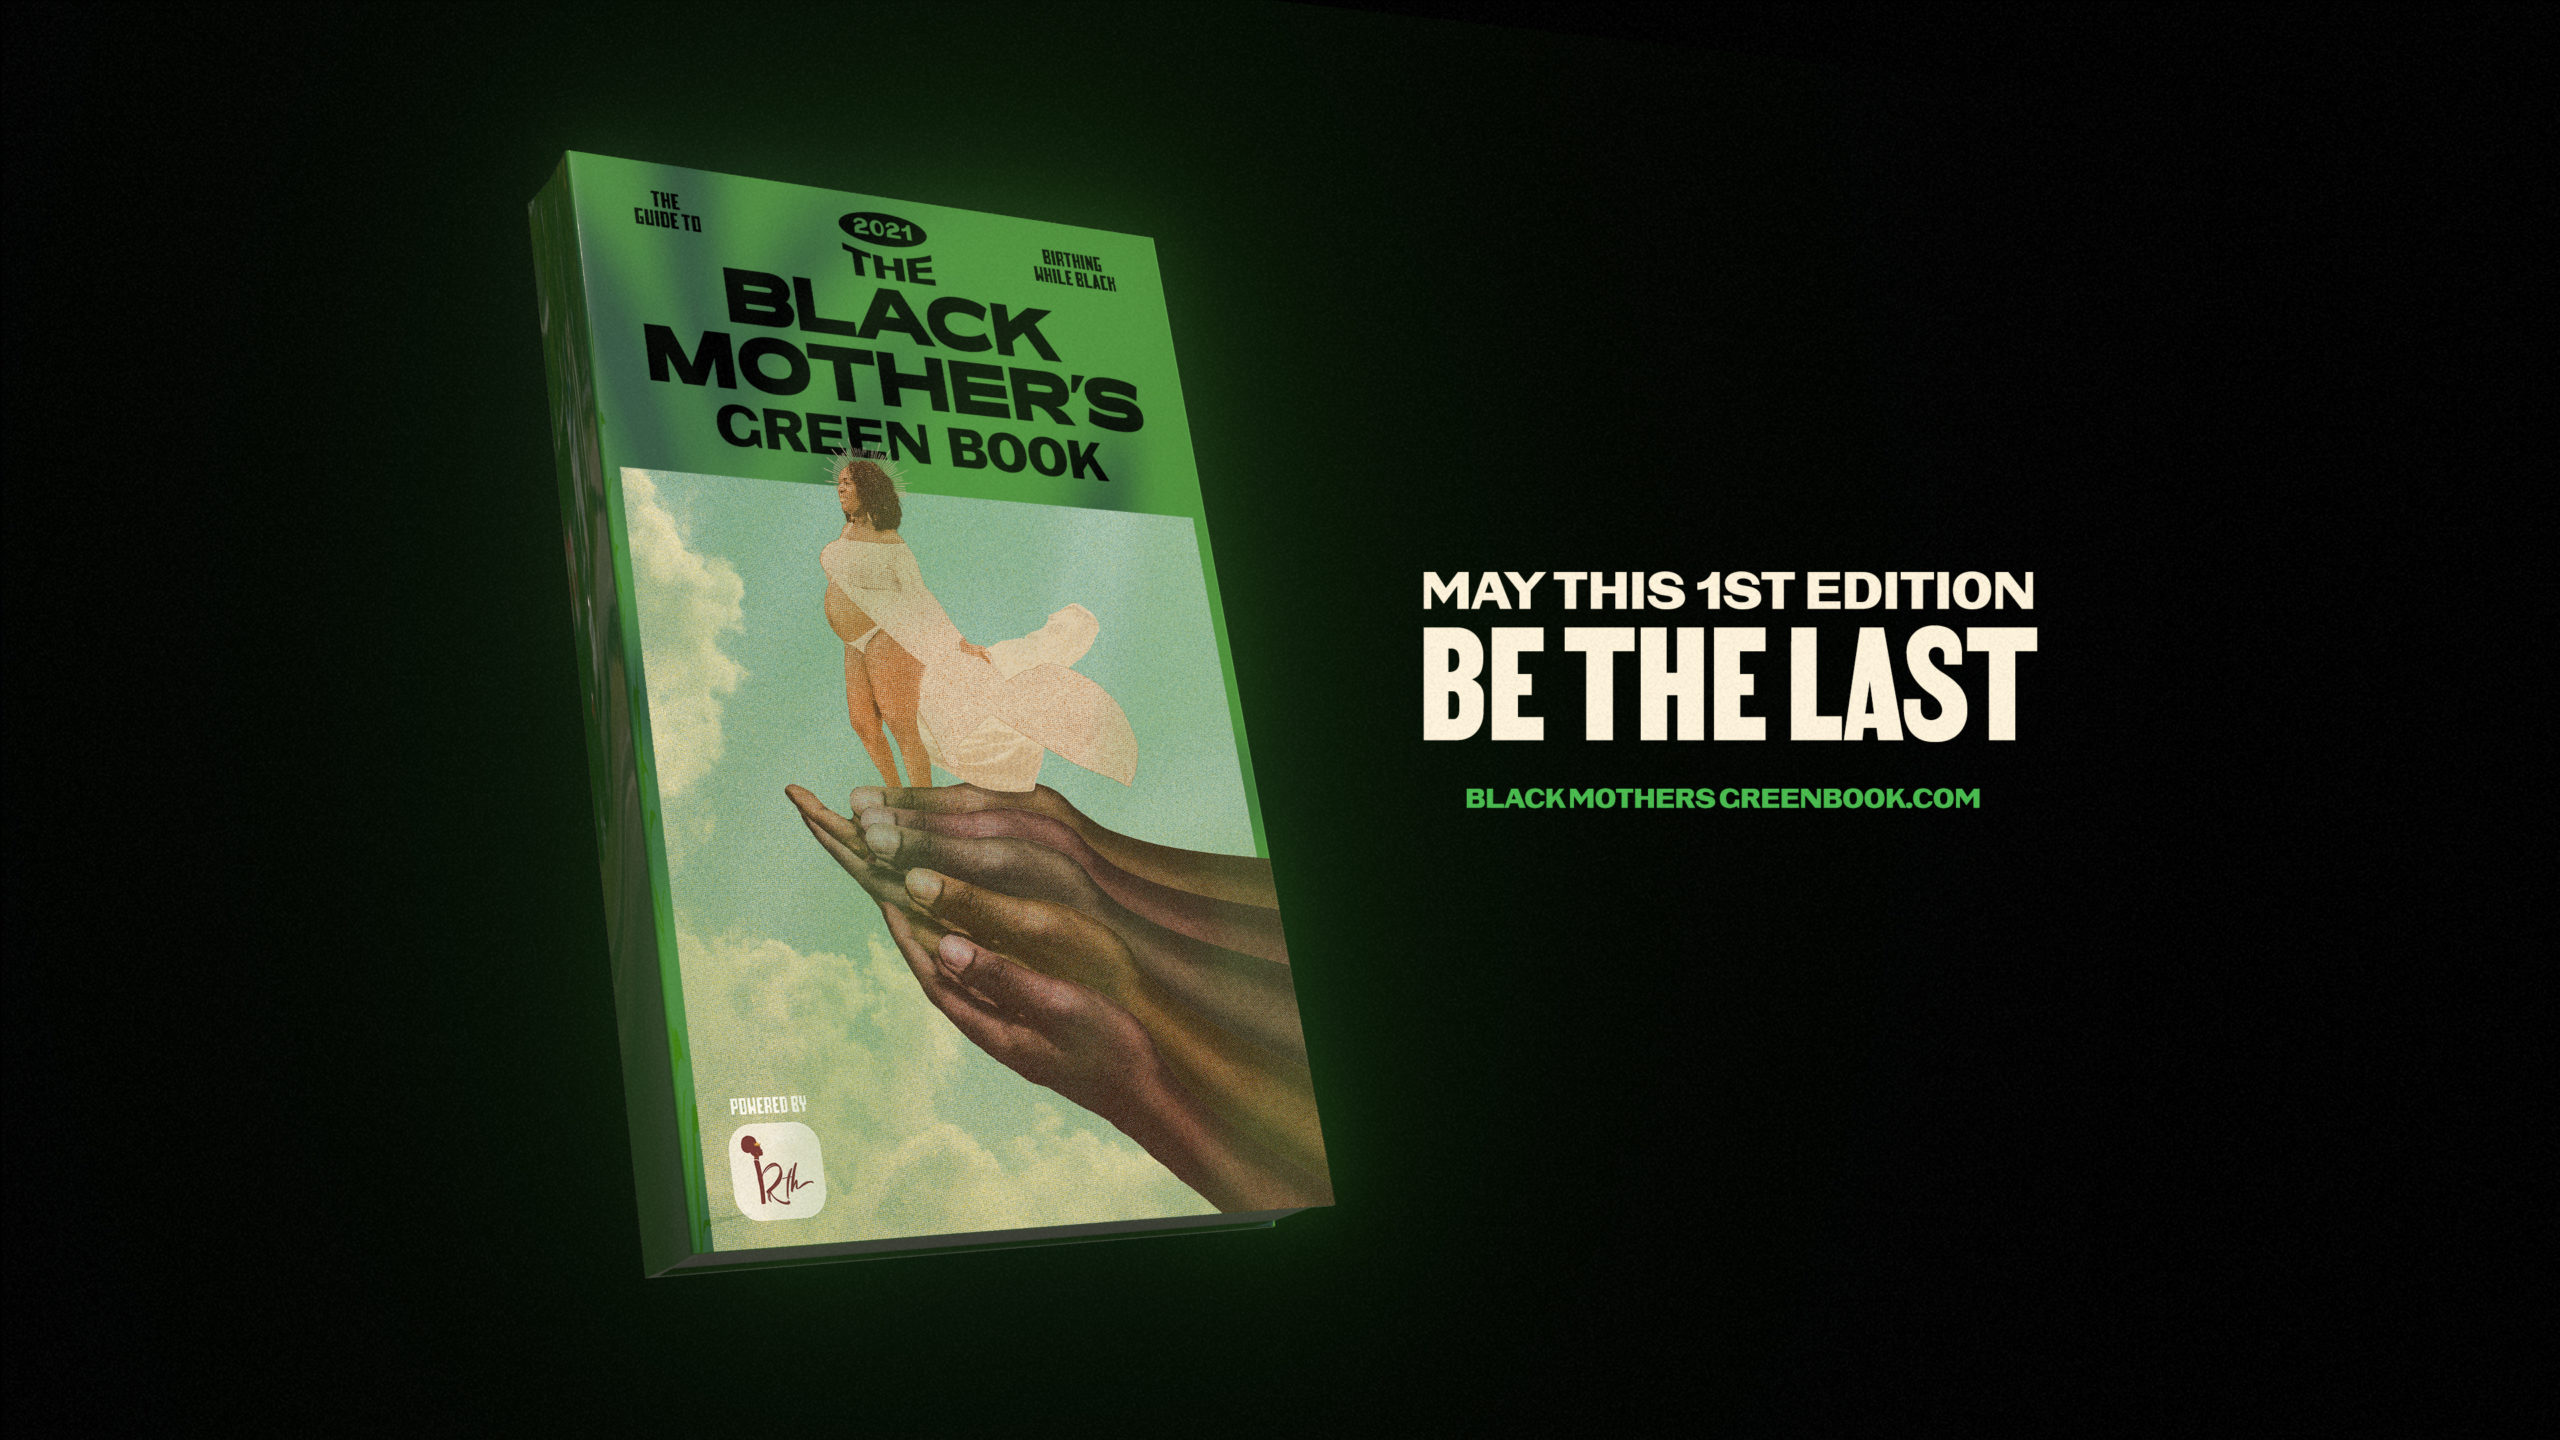 The Black Mother's Greenbook